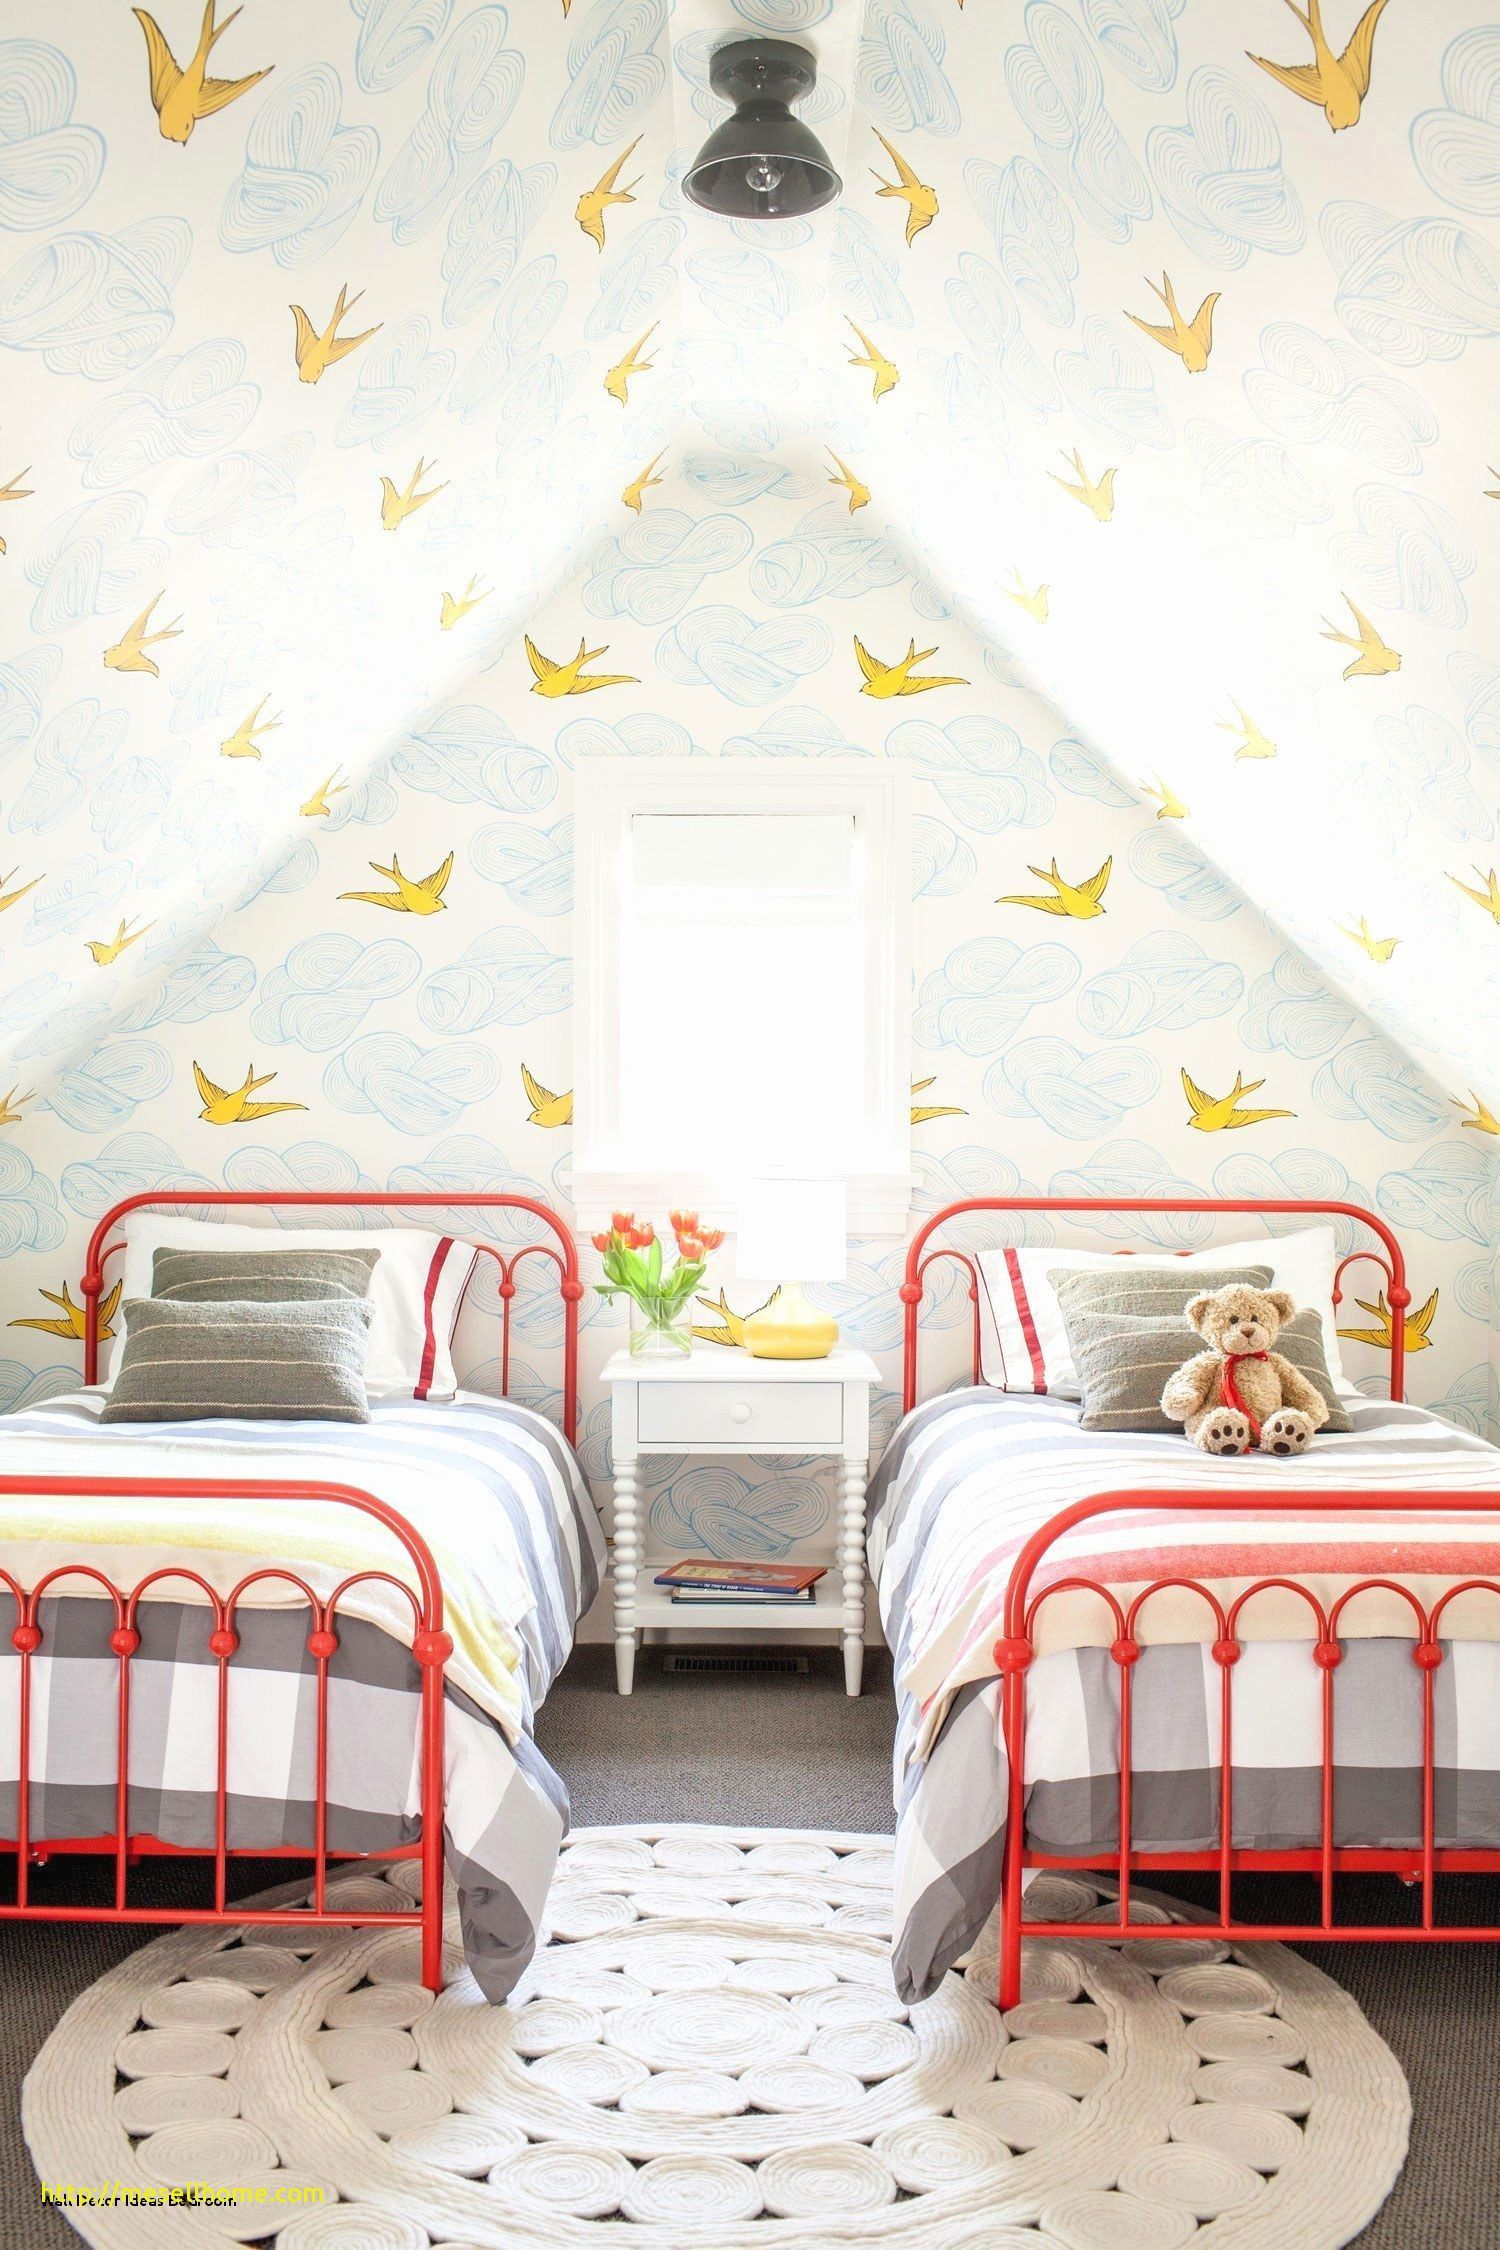 Top 5 Children S Beds Your Child Will Never Miss Bedtime Again Boy Bedroom Design Boys Bedroom Themes Bedroom Themes